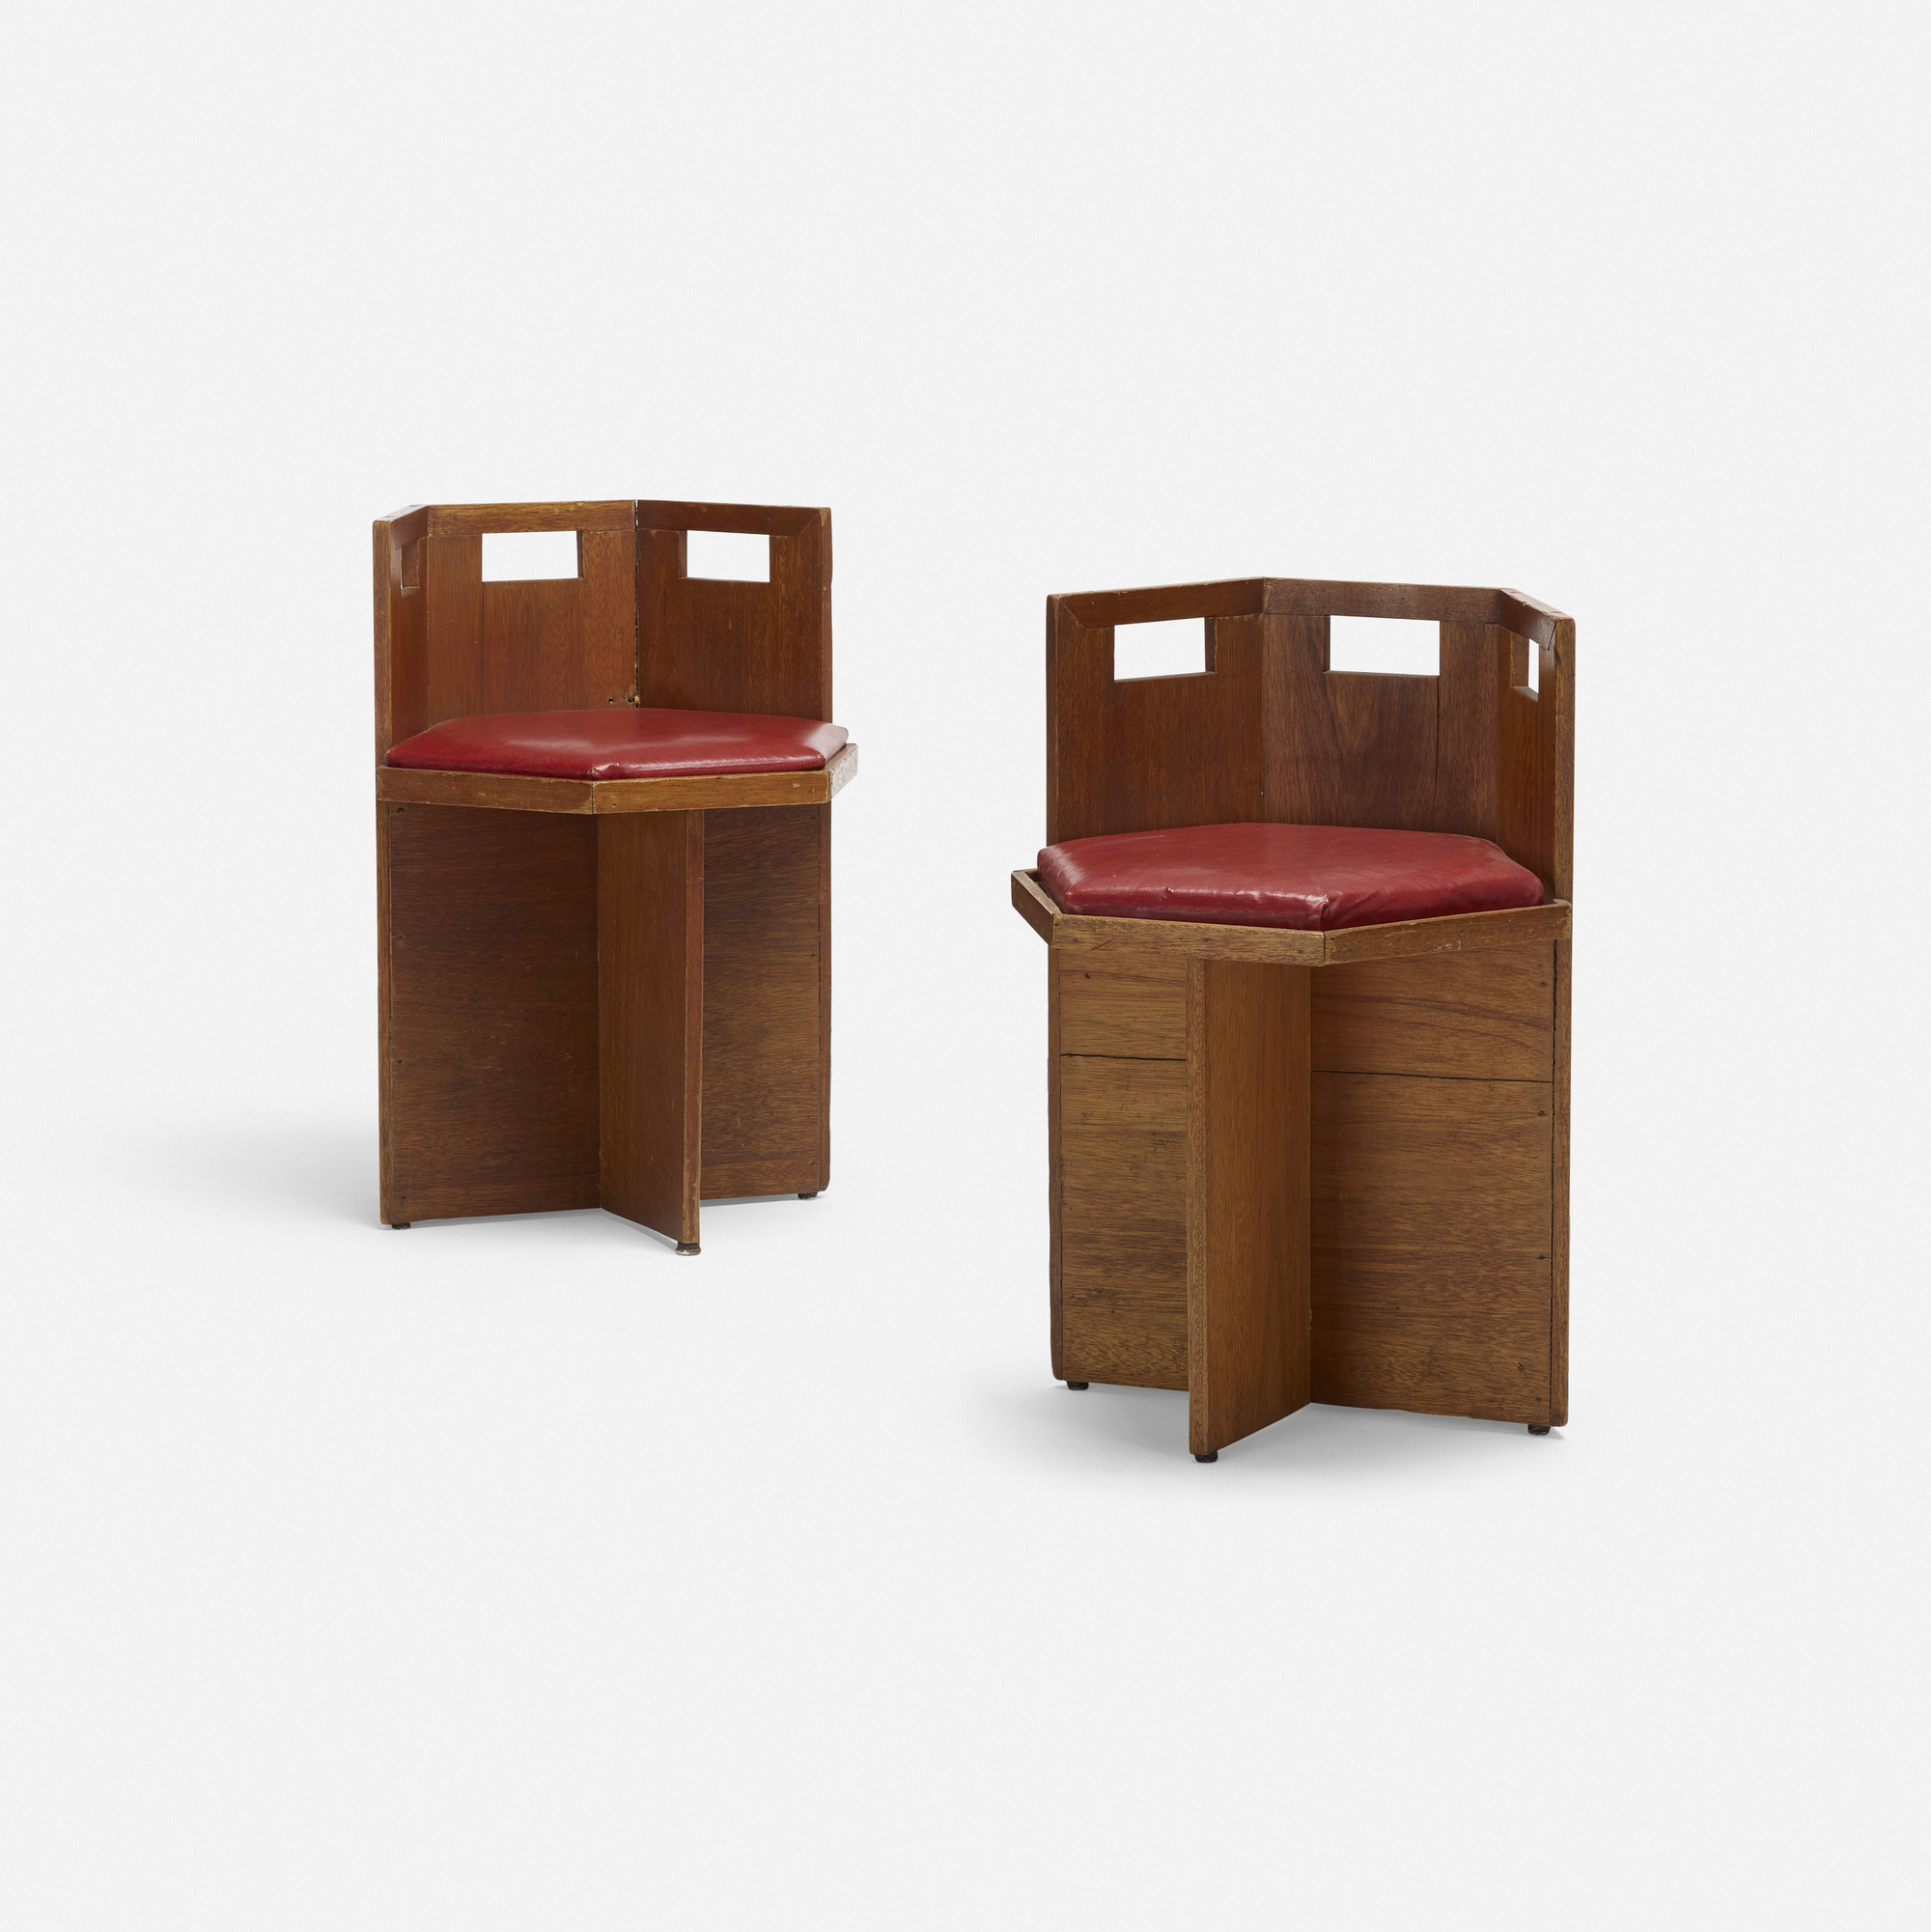 384 In The Manner Of Frank Lloyd Wright Chairs Pair 1